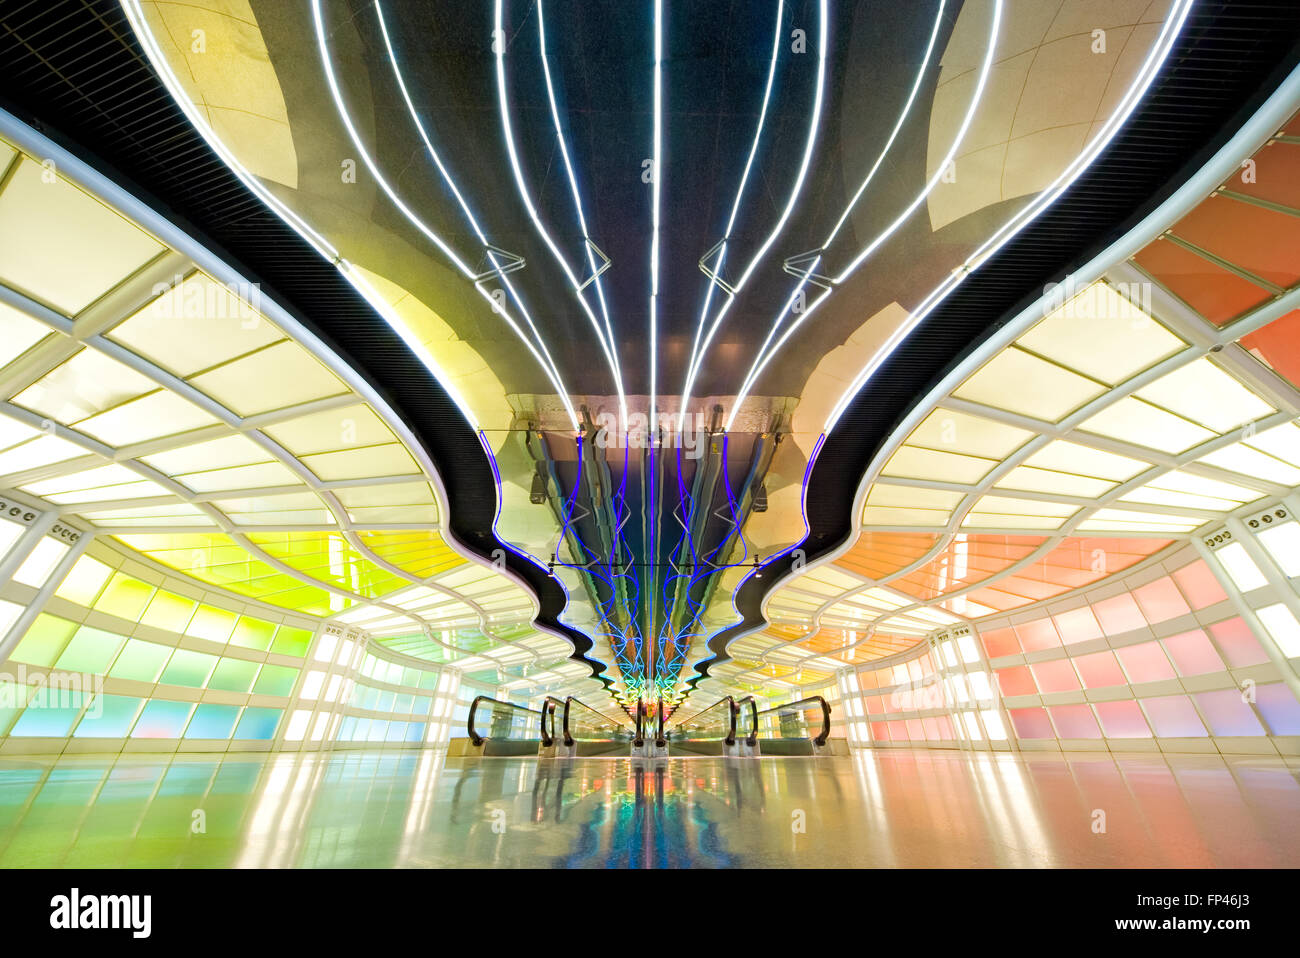 Chicago O'Hare International Airport. Tunnel between Concourses B and C of United Terminal with moving neon - Stock Image